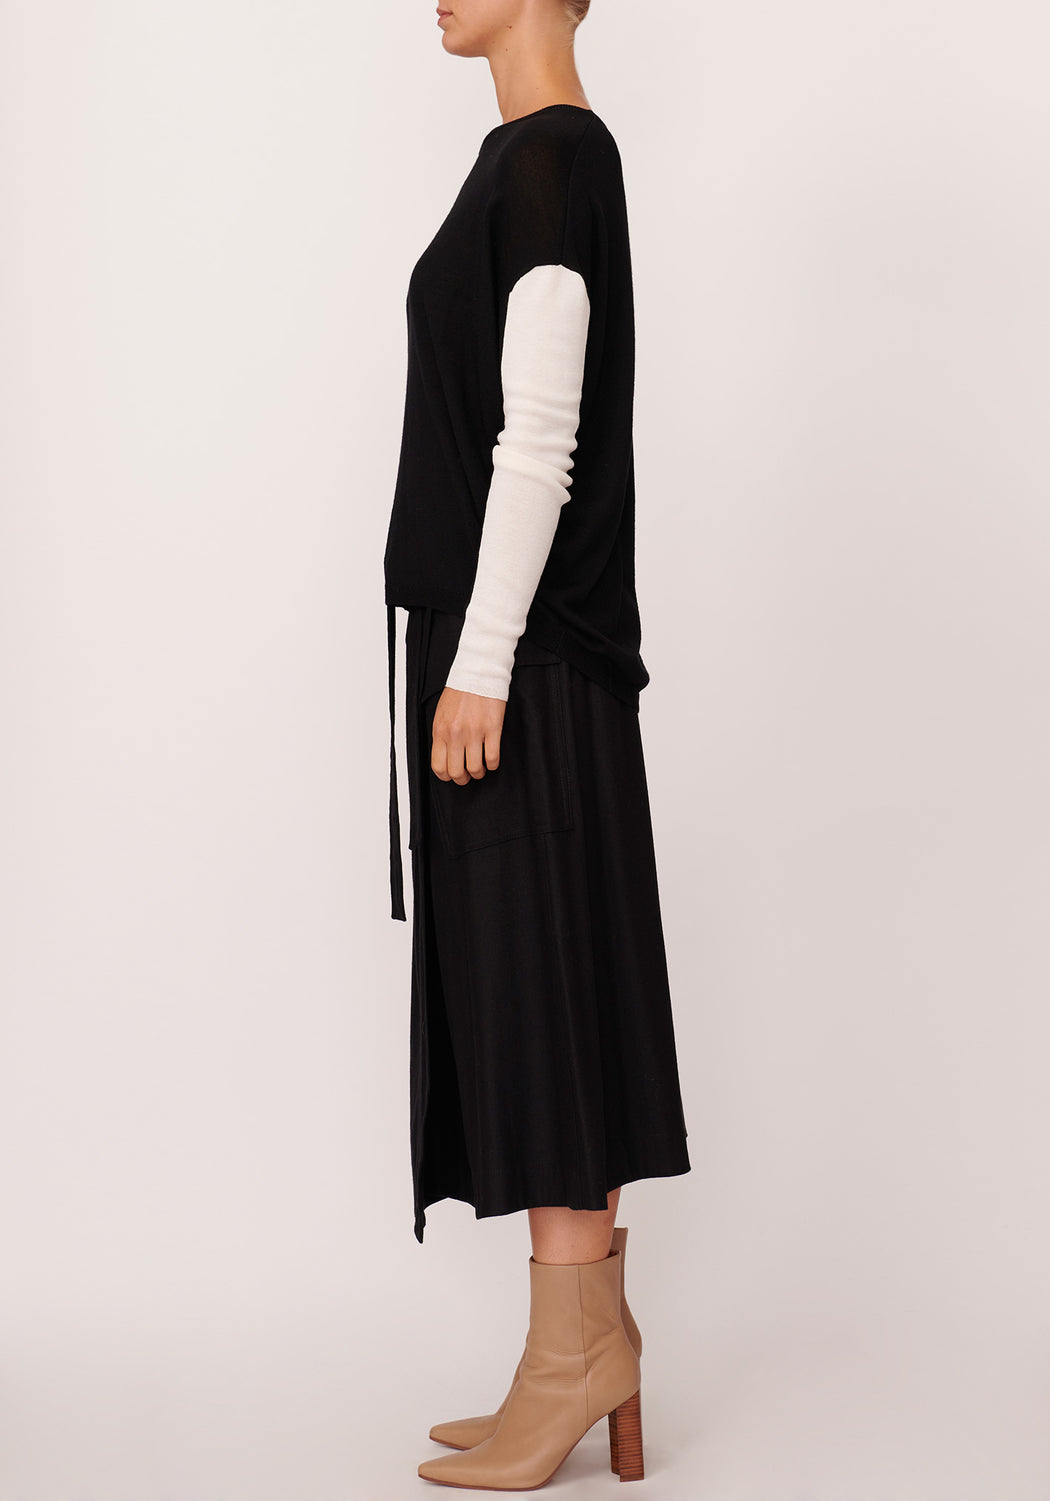 Scope Stripe Sleeve Knit